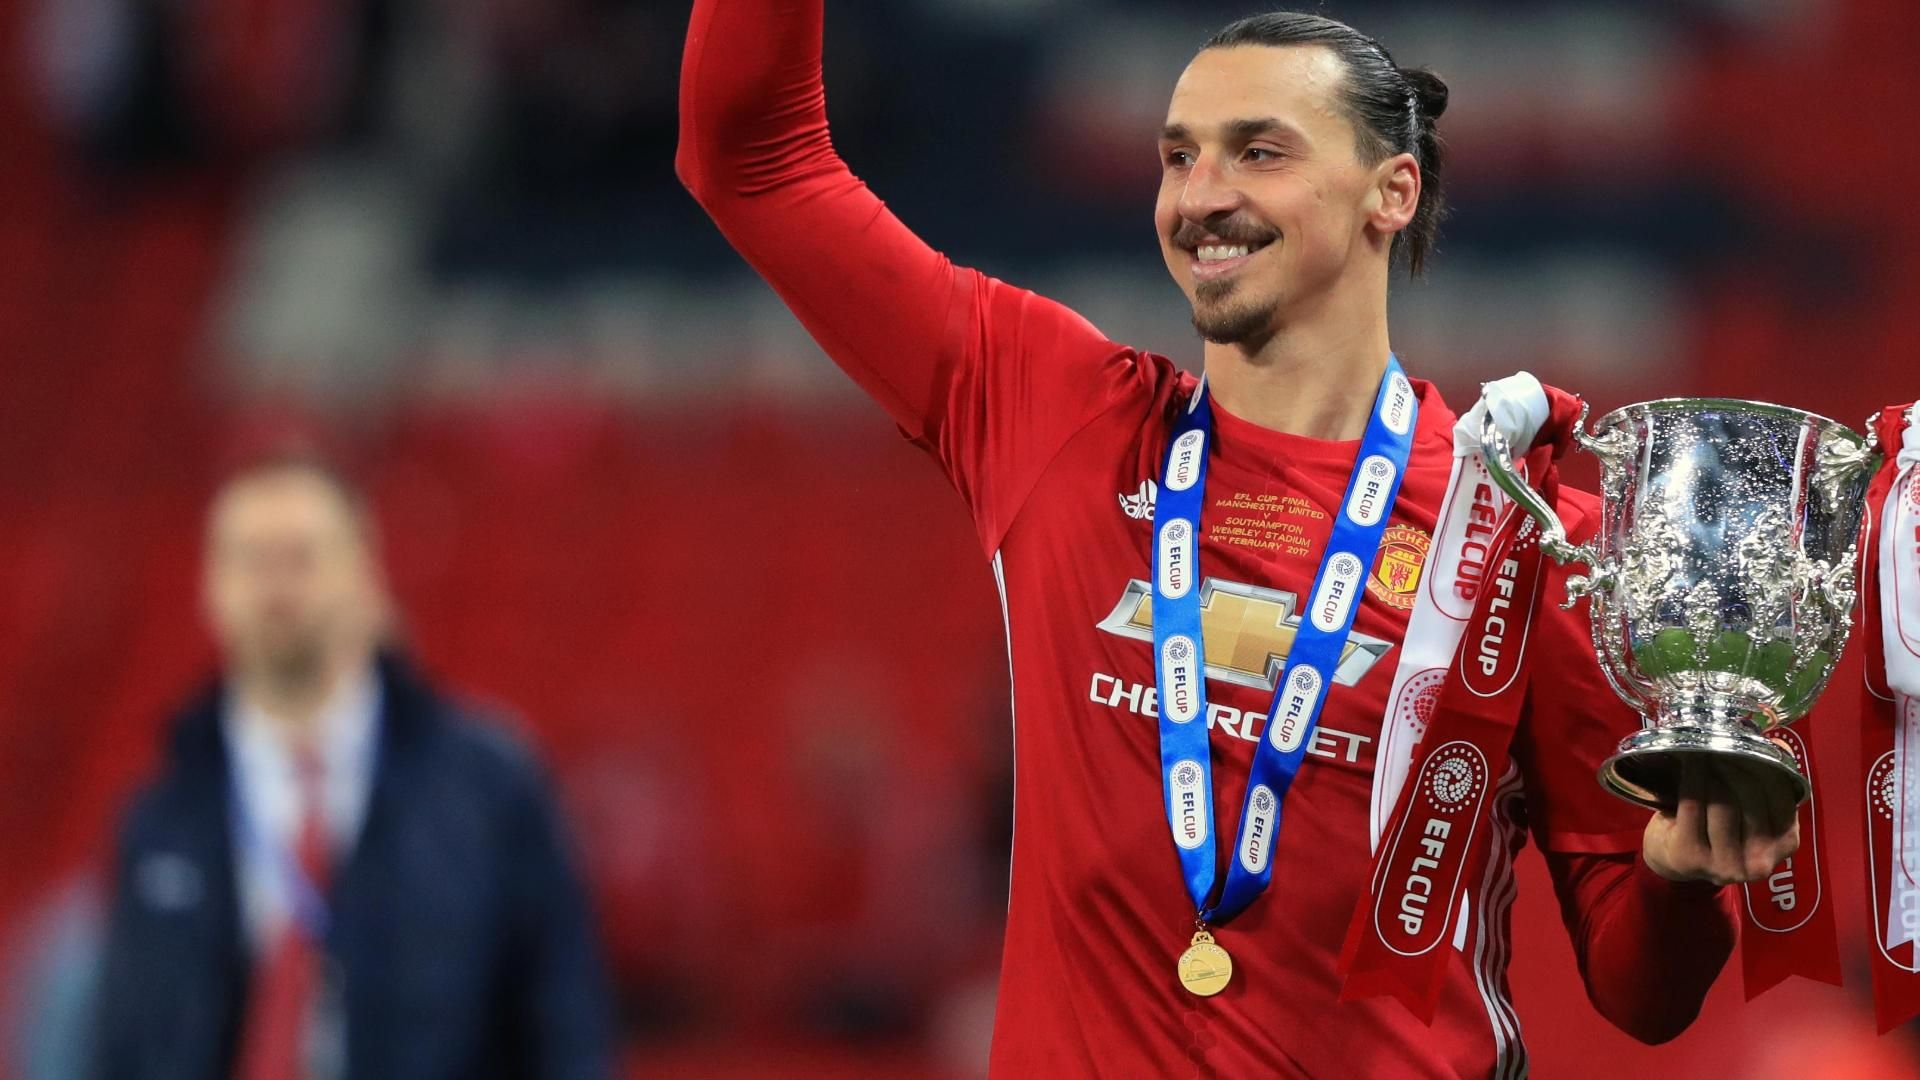 Ibra won't be forgotten at Man United